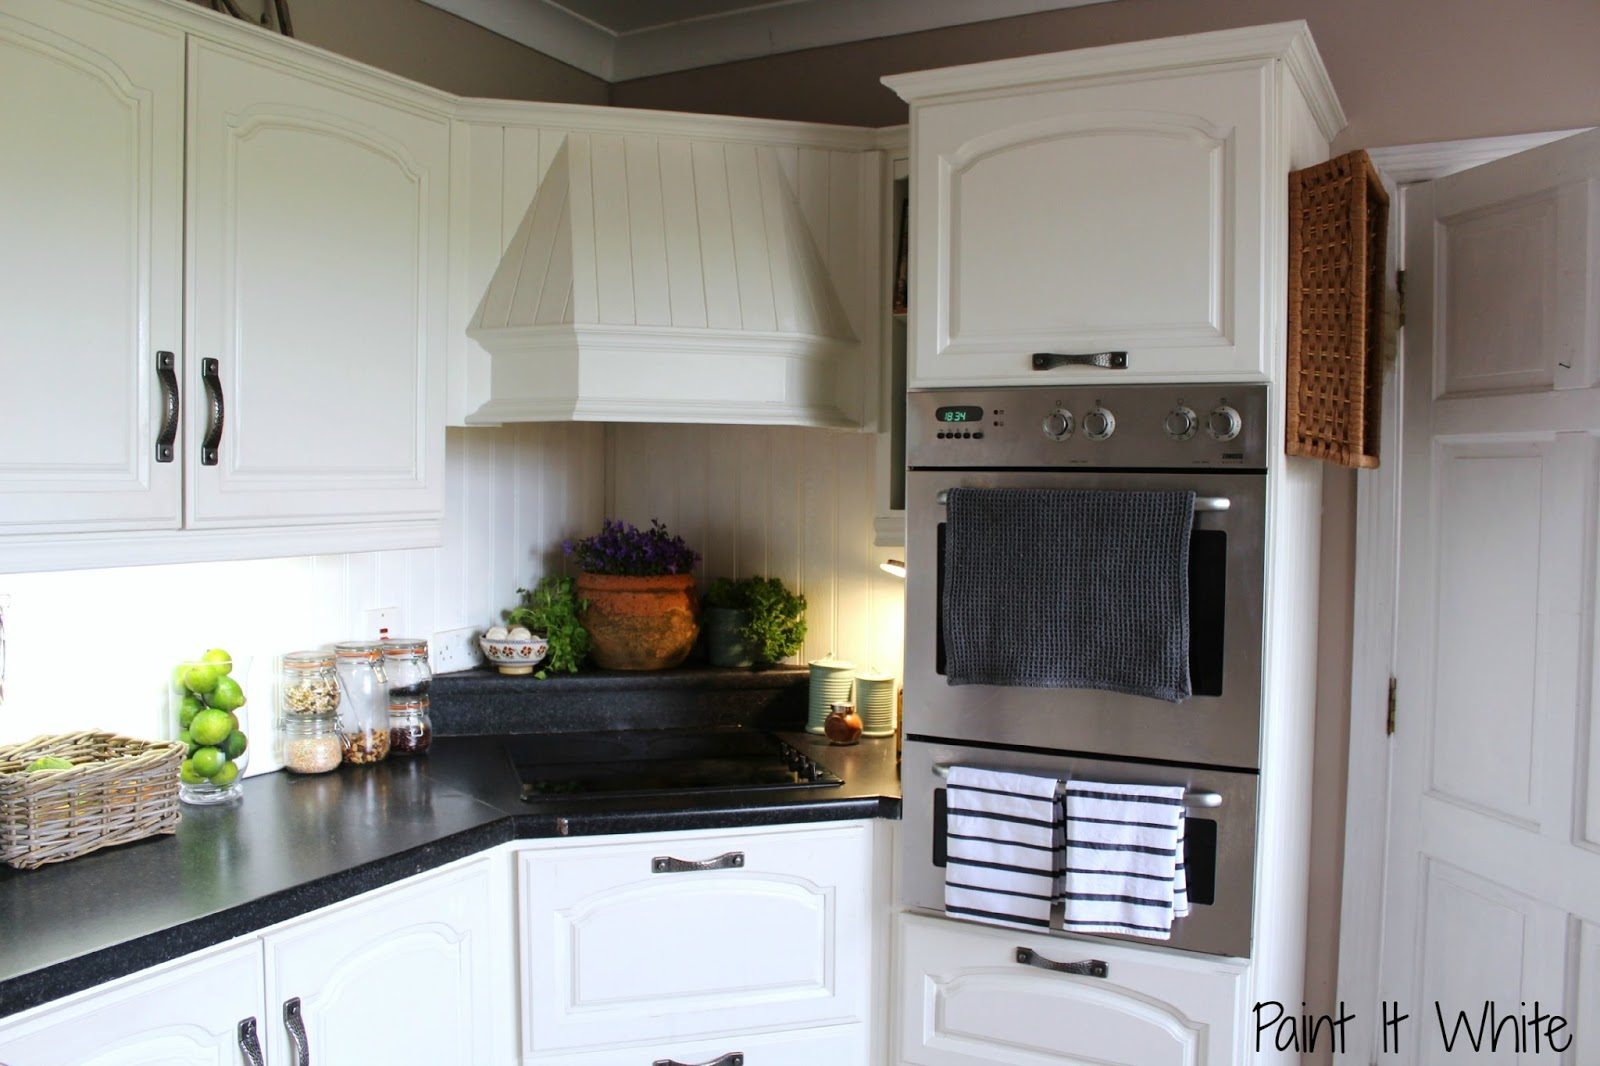 Chalk Paint For Kitchen Cabinets. 14 Annie Sloan chalk paint in Old White wood kitchen cabinet update  Rustic accents for Remodelaholic Beautiful Kitchen Update with